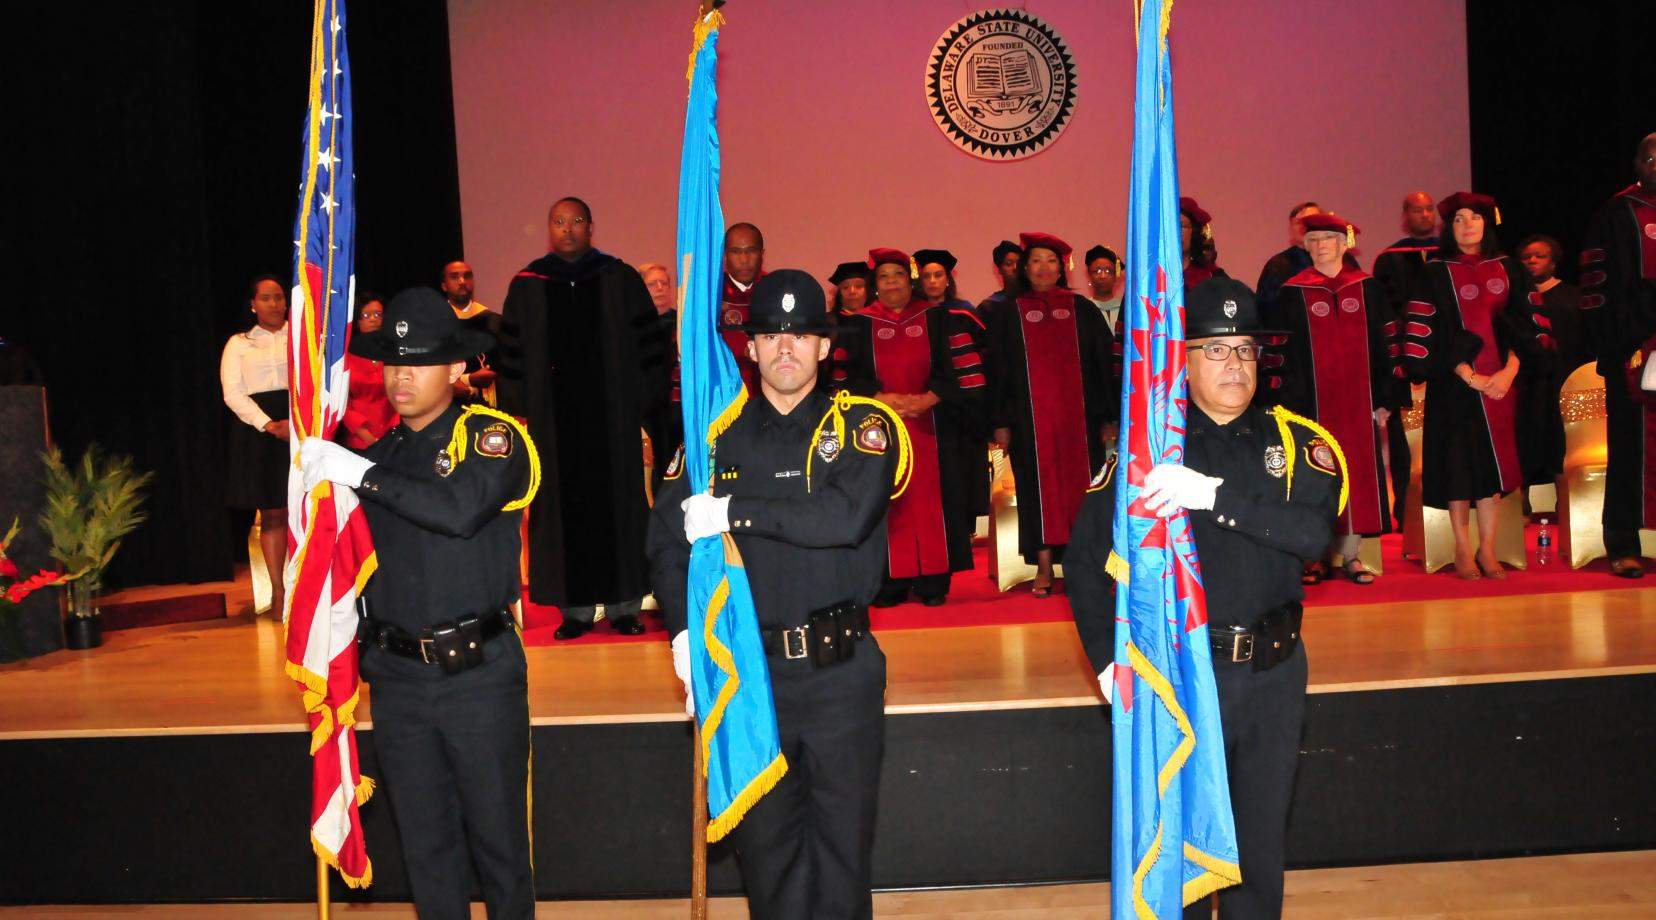 The DSU Police Honor Guard -- (l-r) Ptlm. Teddy Tyson, Ptlm. Anthony Sapienza and Ptlm. Jorge Camacho -- present the flags for the opening National Anthem during the Convocation Ceremony.